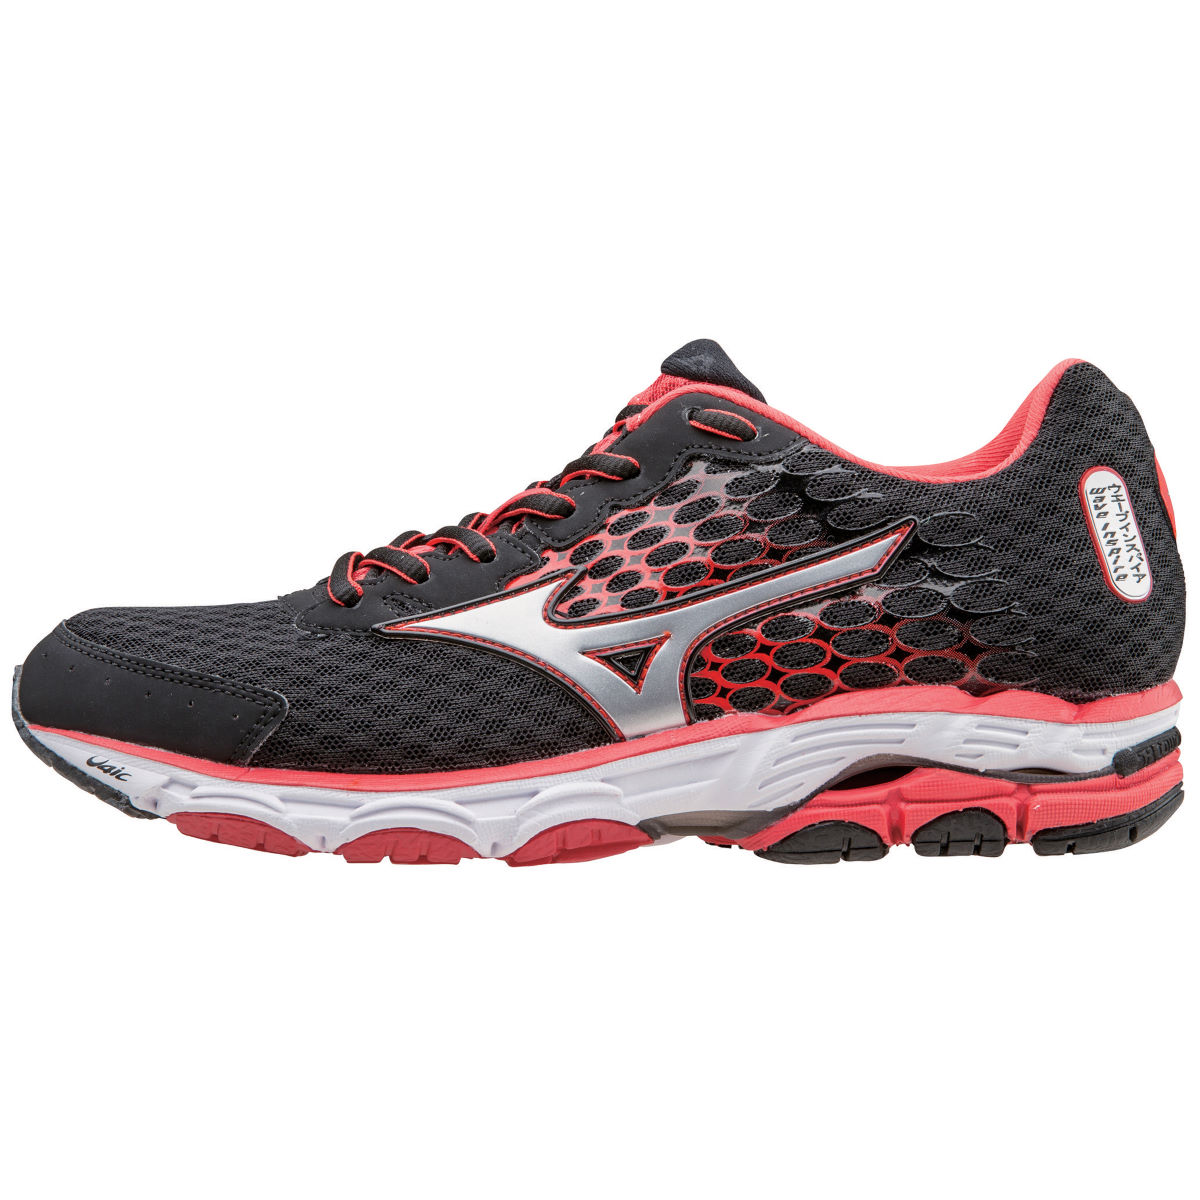 Mizuno Women's Wave Inspire 11 Shoes (AW15)